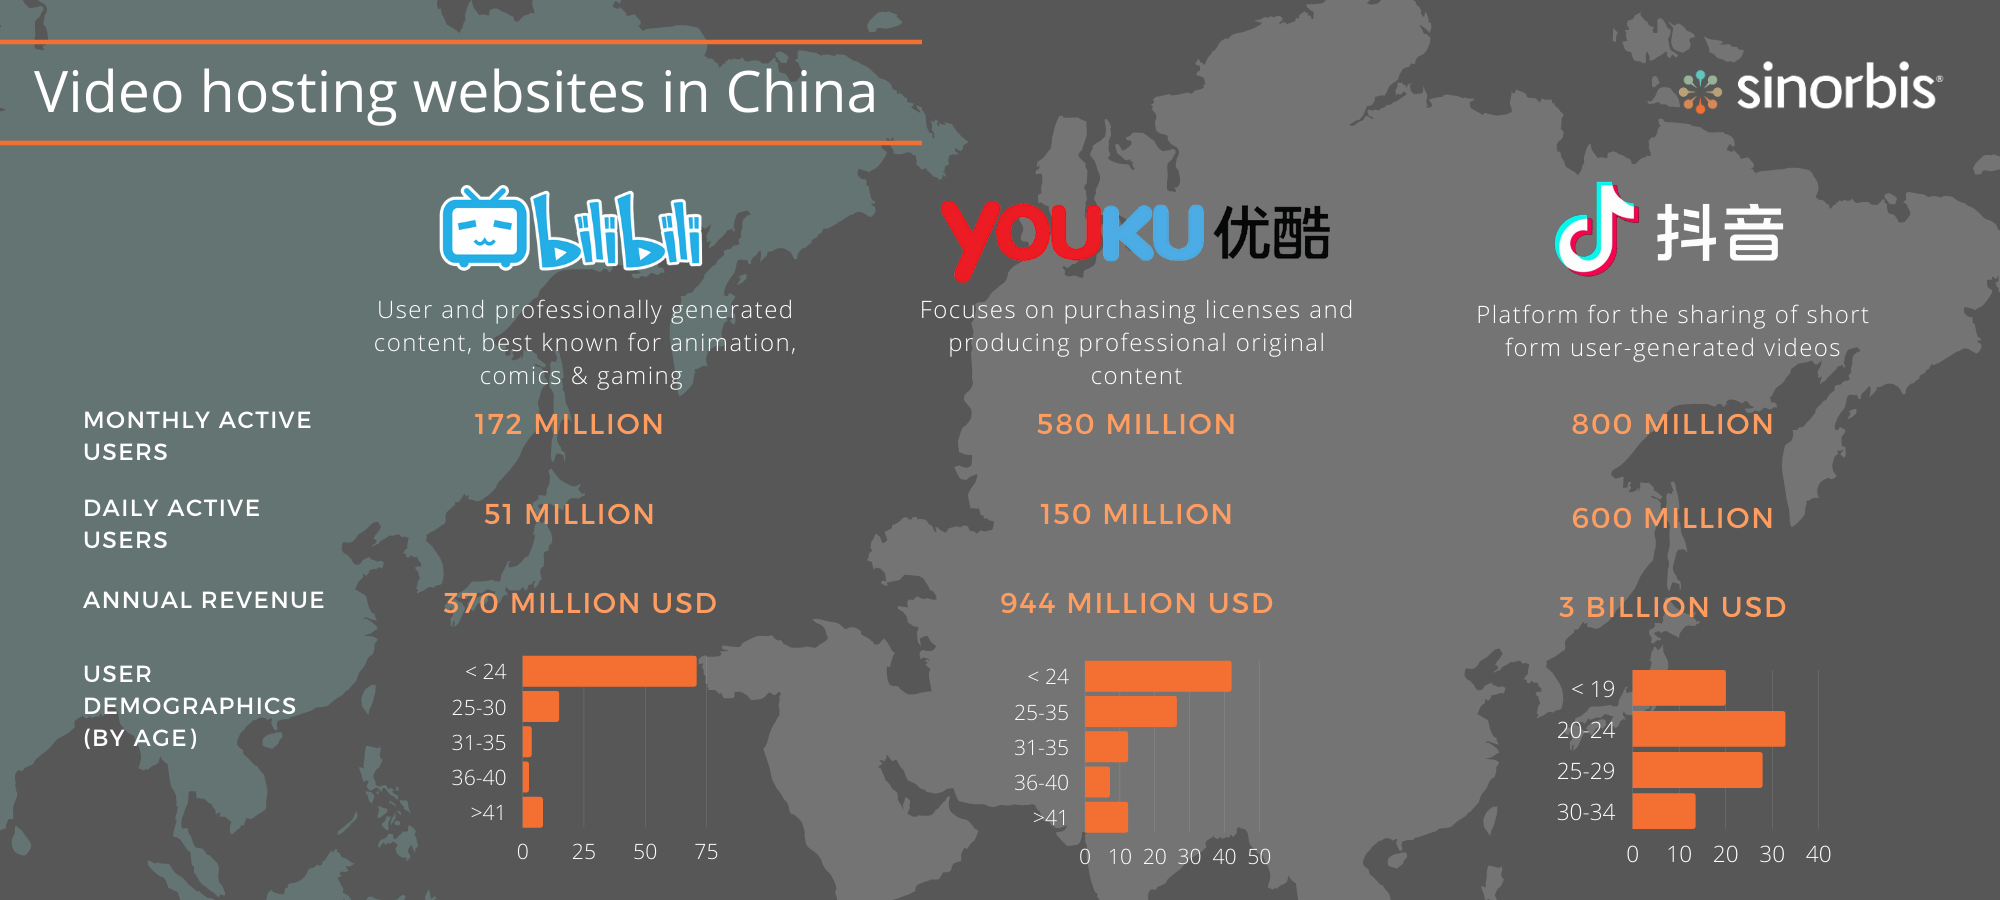 video-hosting-websites-in-china-infographics